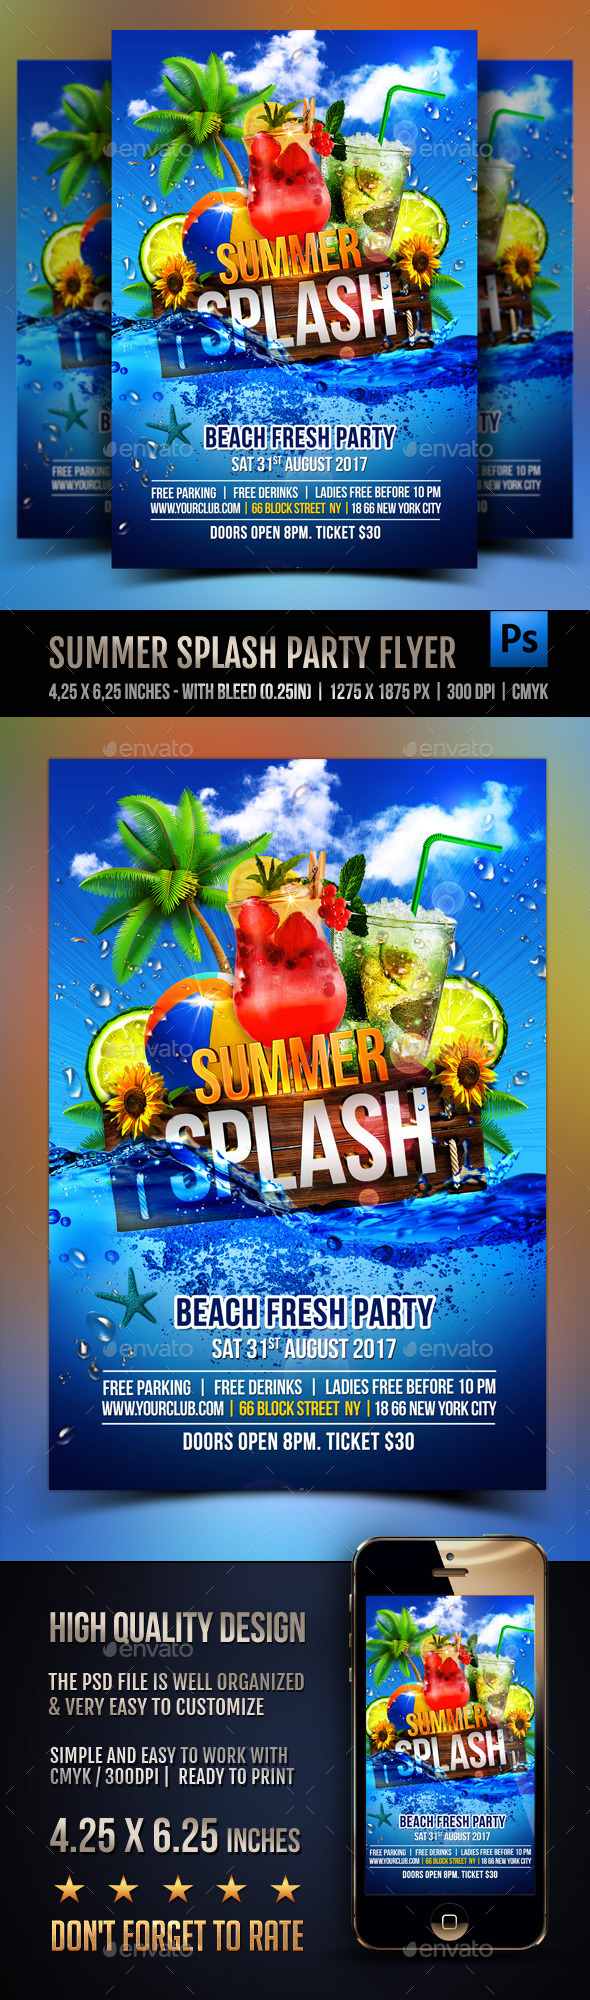 Summer Splash Cocktails Party Flyer - Clubs & Parties Events